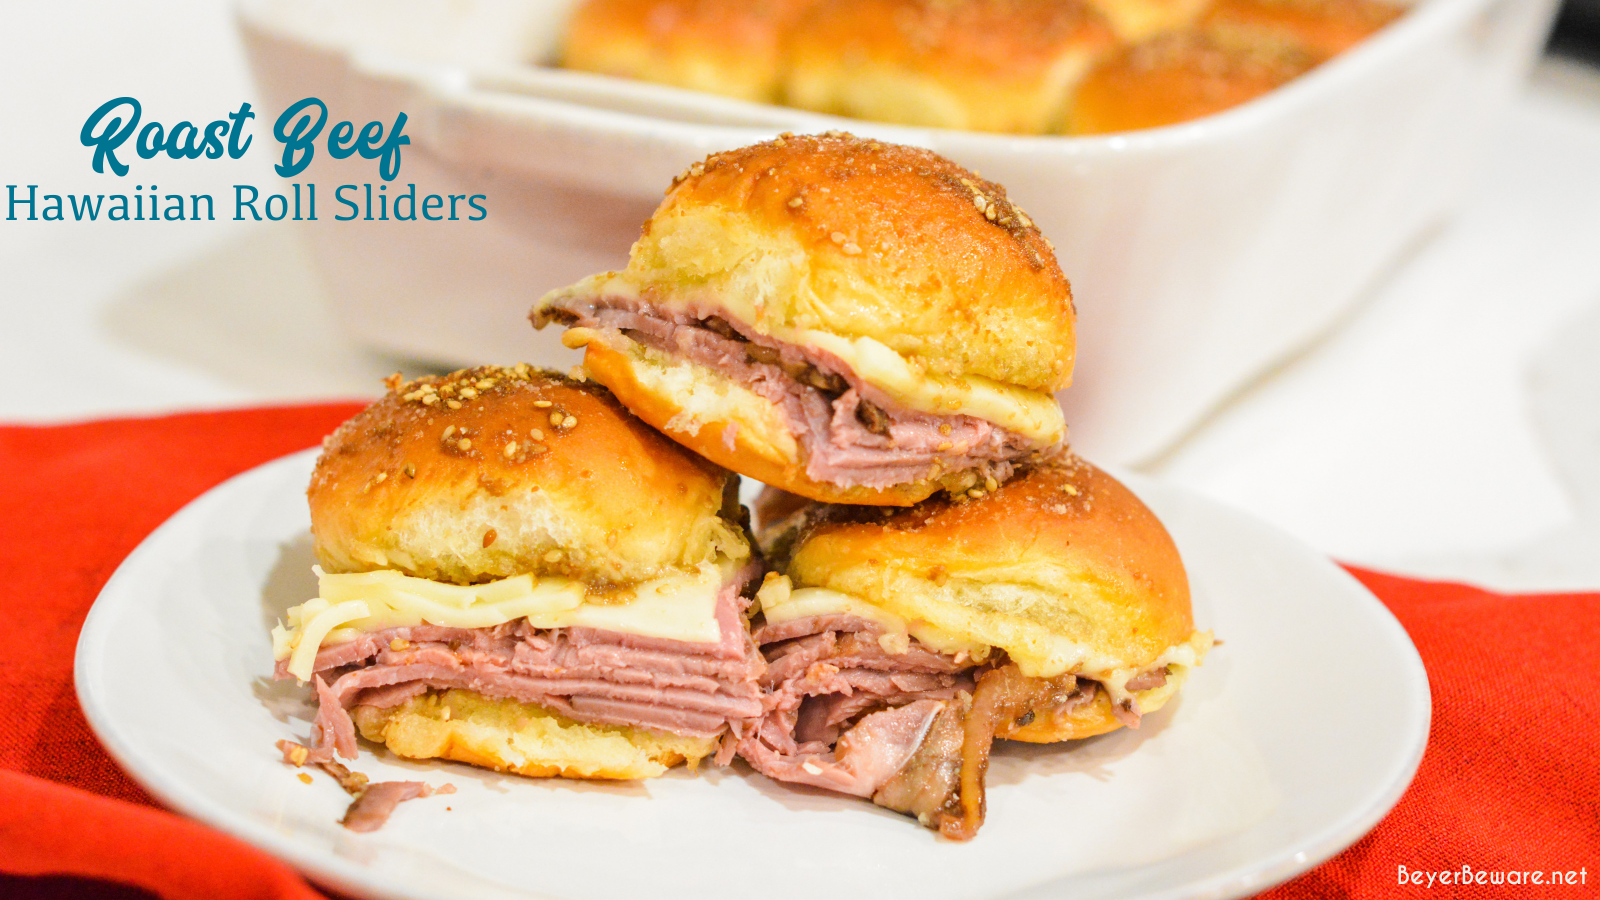 Roast beef Hawaiian roll sliders, or more affectionately called Sandy's Sandwiches, combine butter, garlic powder, worcestershire sauce, and poppy seeds for a butter glaze that compliments these baked roast beef and cheese sandwiches.